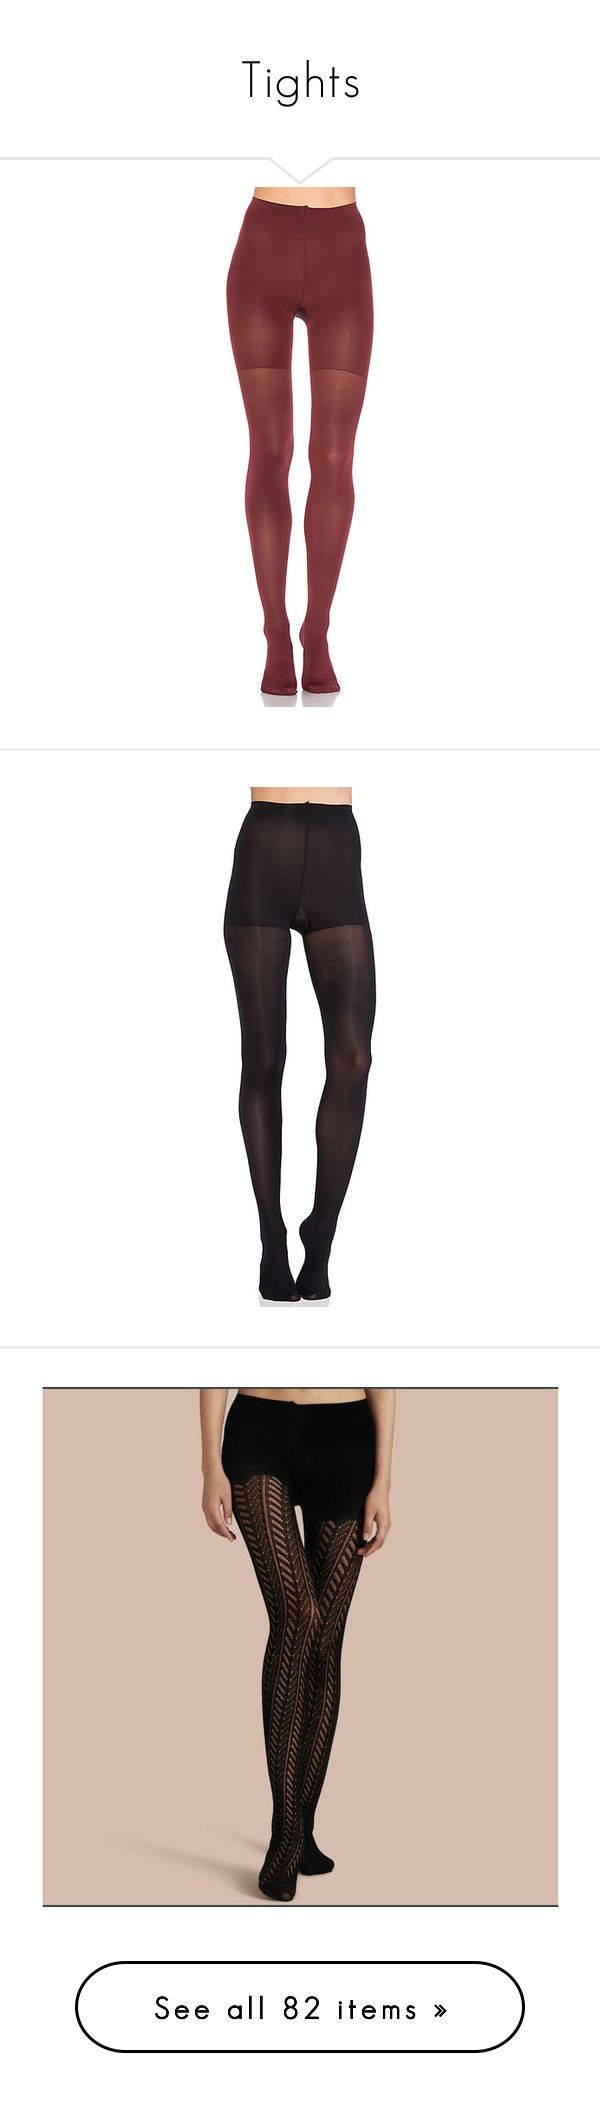 """""""Tights"""" by kingdomofmercia ❤ liked on Polyvore featuring intimates, hosiery, tights, socks/tights, opaque stockings, spanx tights, spanx stockings, nylon hosiery, spanx pantyhose and elastic stocking"""